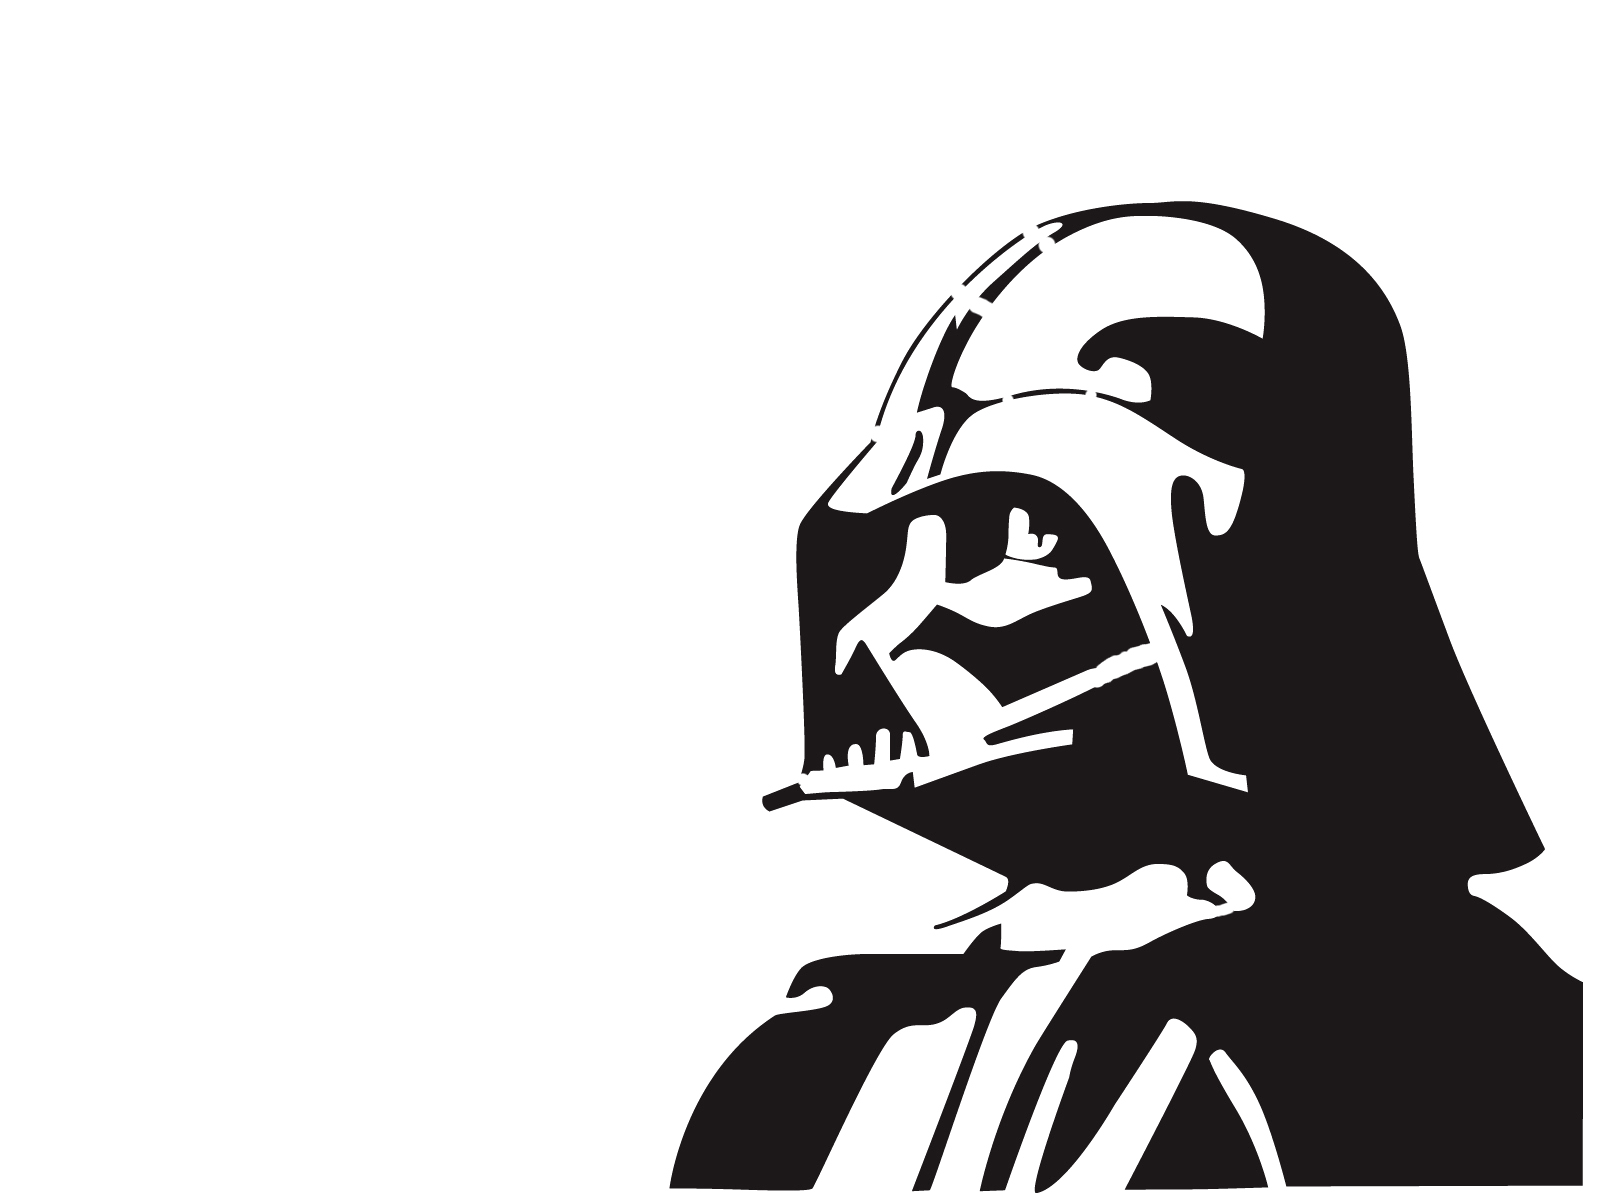 Darth Vader clipart #5, Download drawings